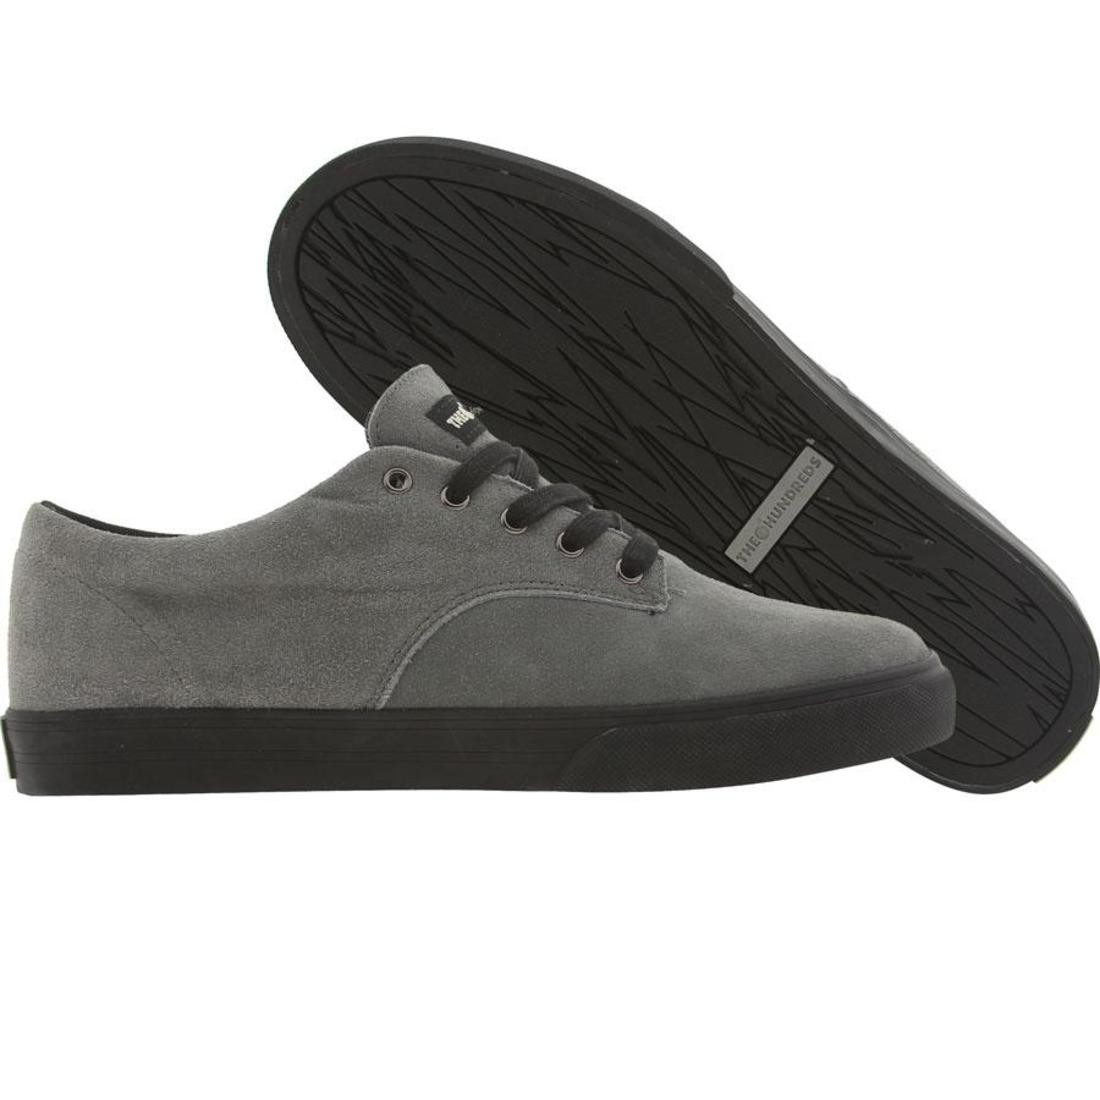 ジョンソン 黒 ブラック スニーカー メンズ 【 The Hundreds Johnson Low - Black Tape Pack (charcoal) 】 Charcoal